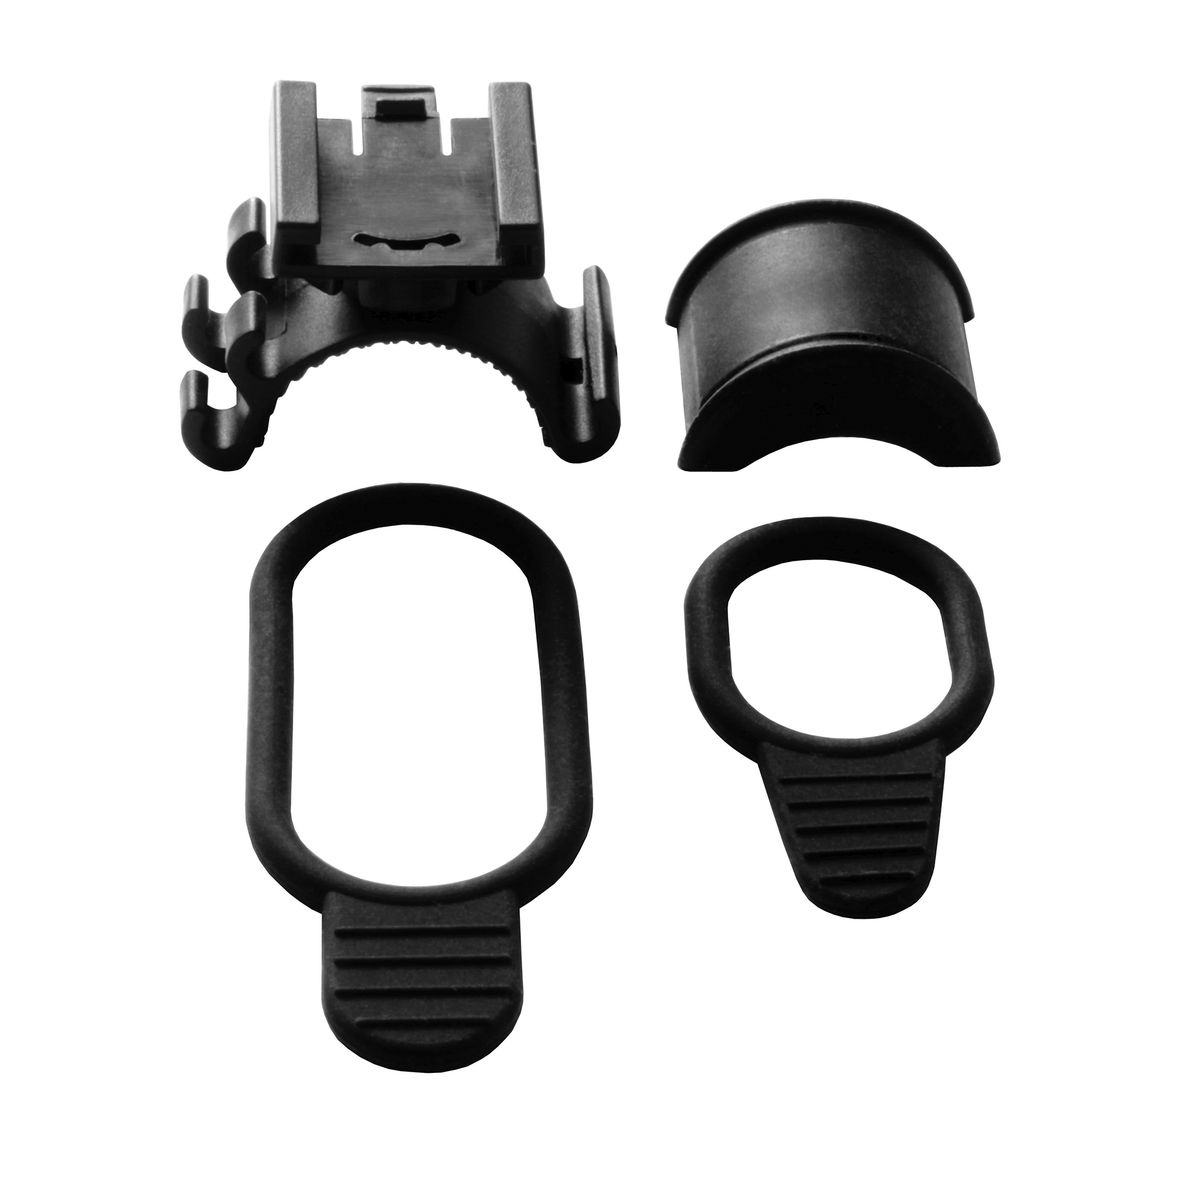 Spare mount for Lynx F25, F30, F35 and Lynx R mini